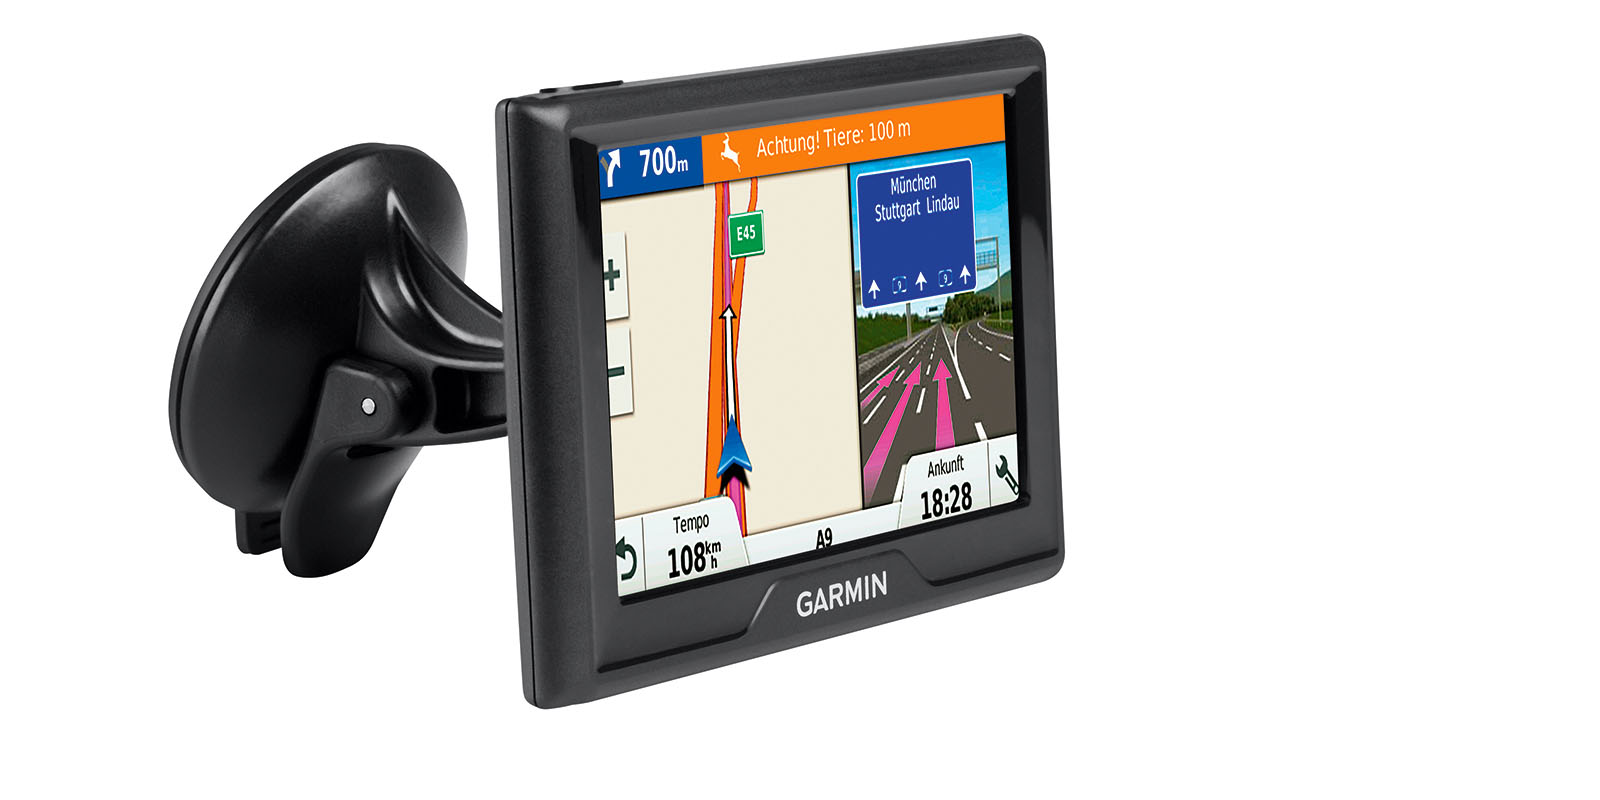 navigationsger t drive 40 lmt ce garmin pkw navi. Black Bedroom Furniture Sets. Home Design Ideas